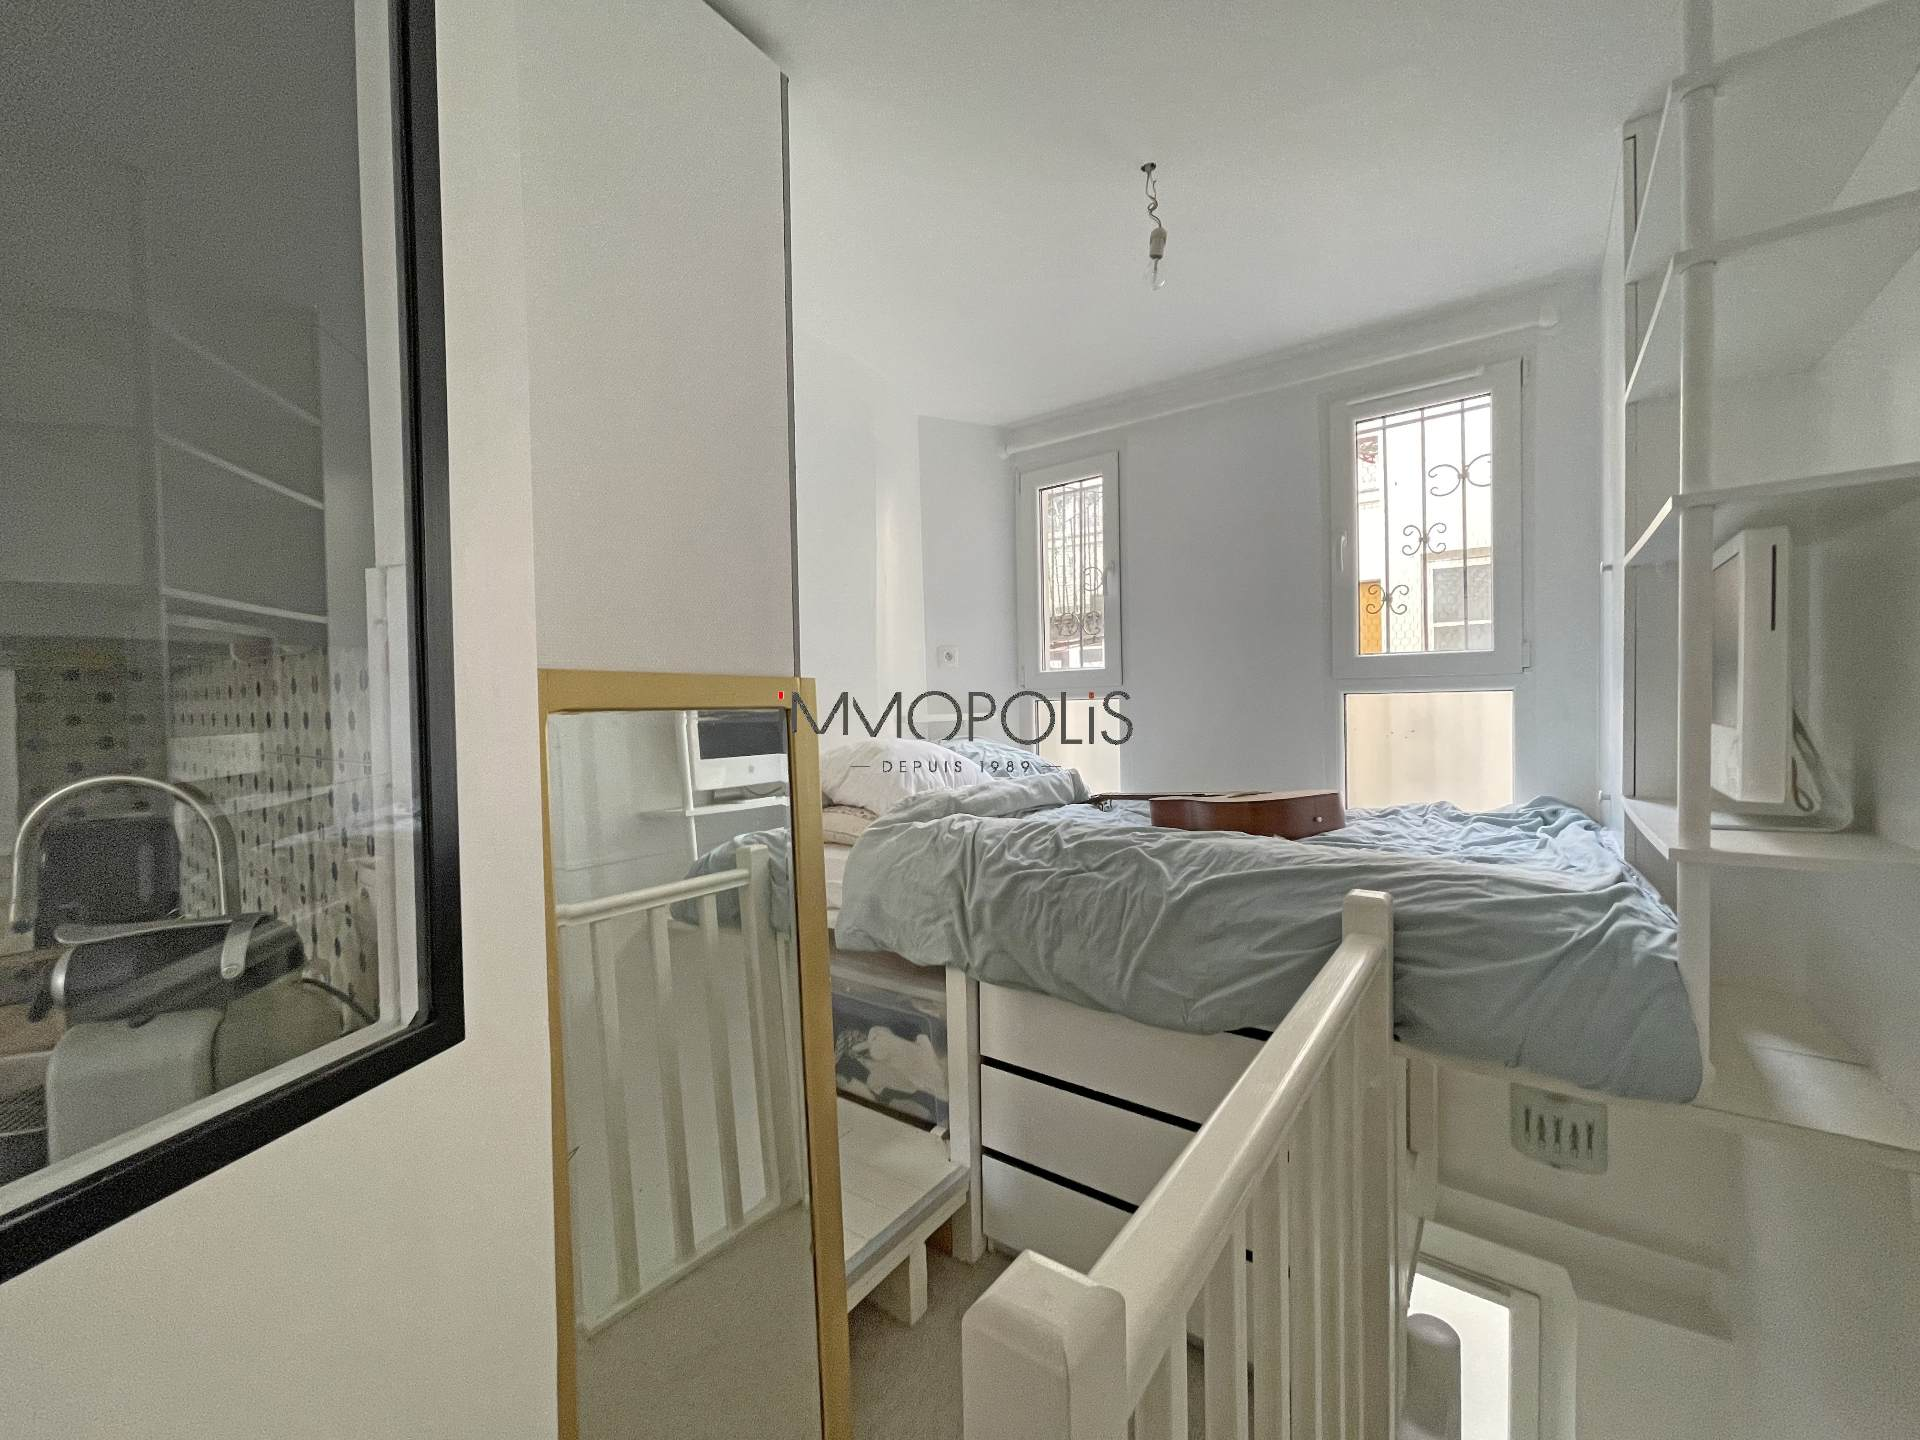 2 charming duplex rooms in Montmartre, rue Gabrielle 5